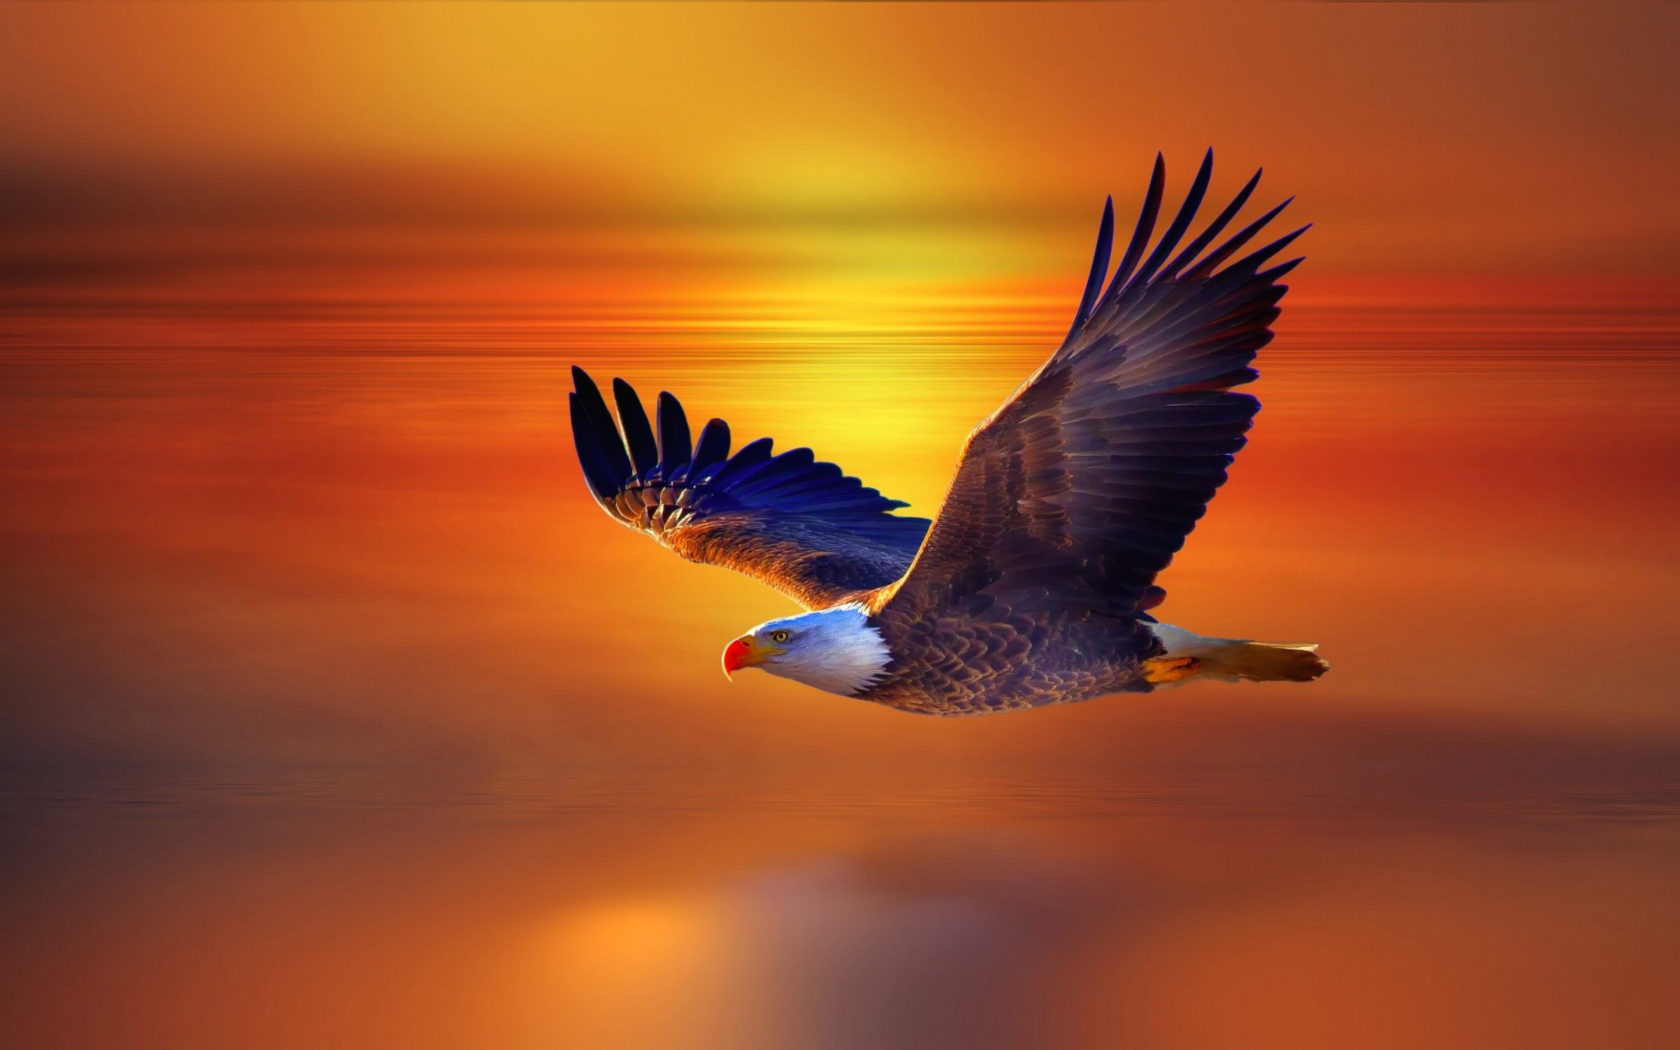 Eagle Wallpaper Iphone X Flight Bald Eagle And Red Sky Sunset Beautiful Desktop